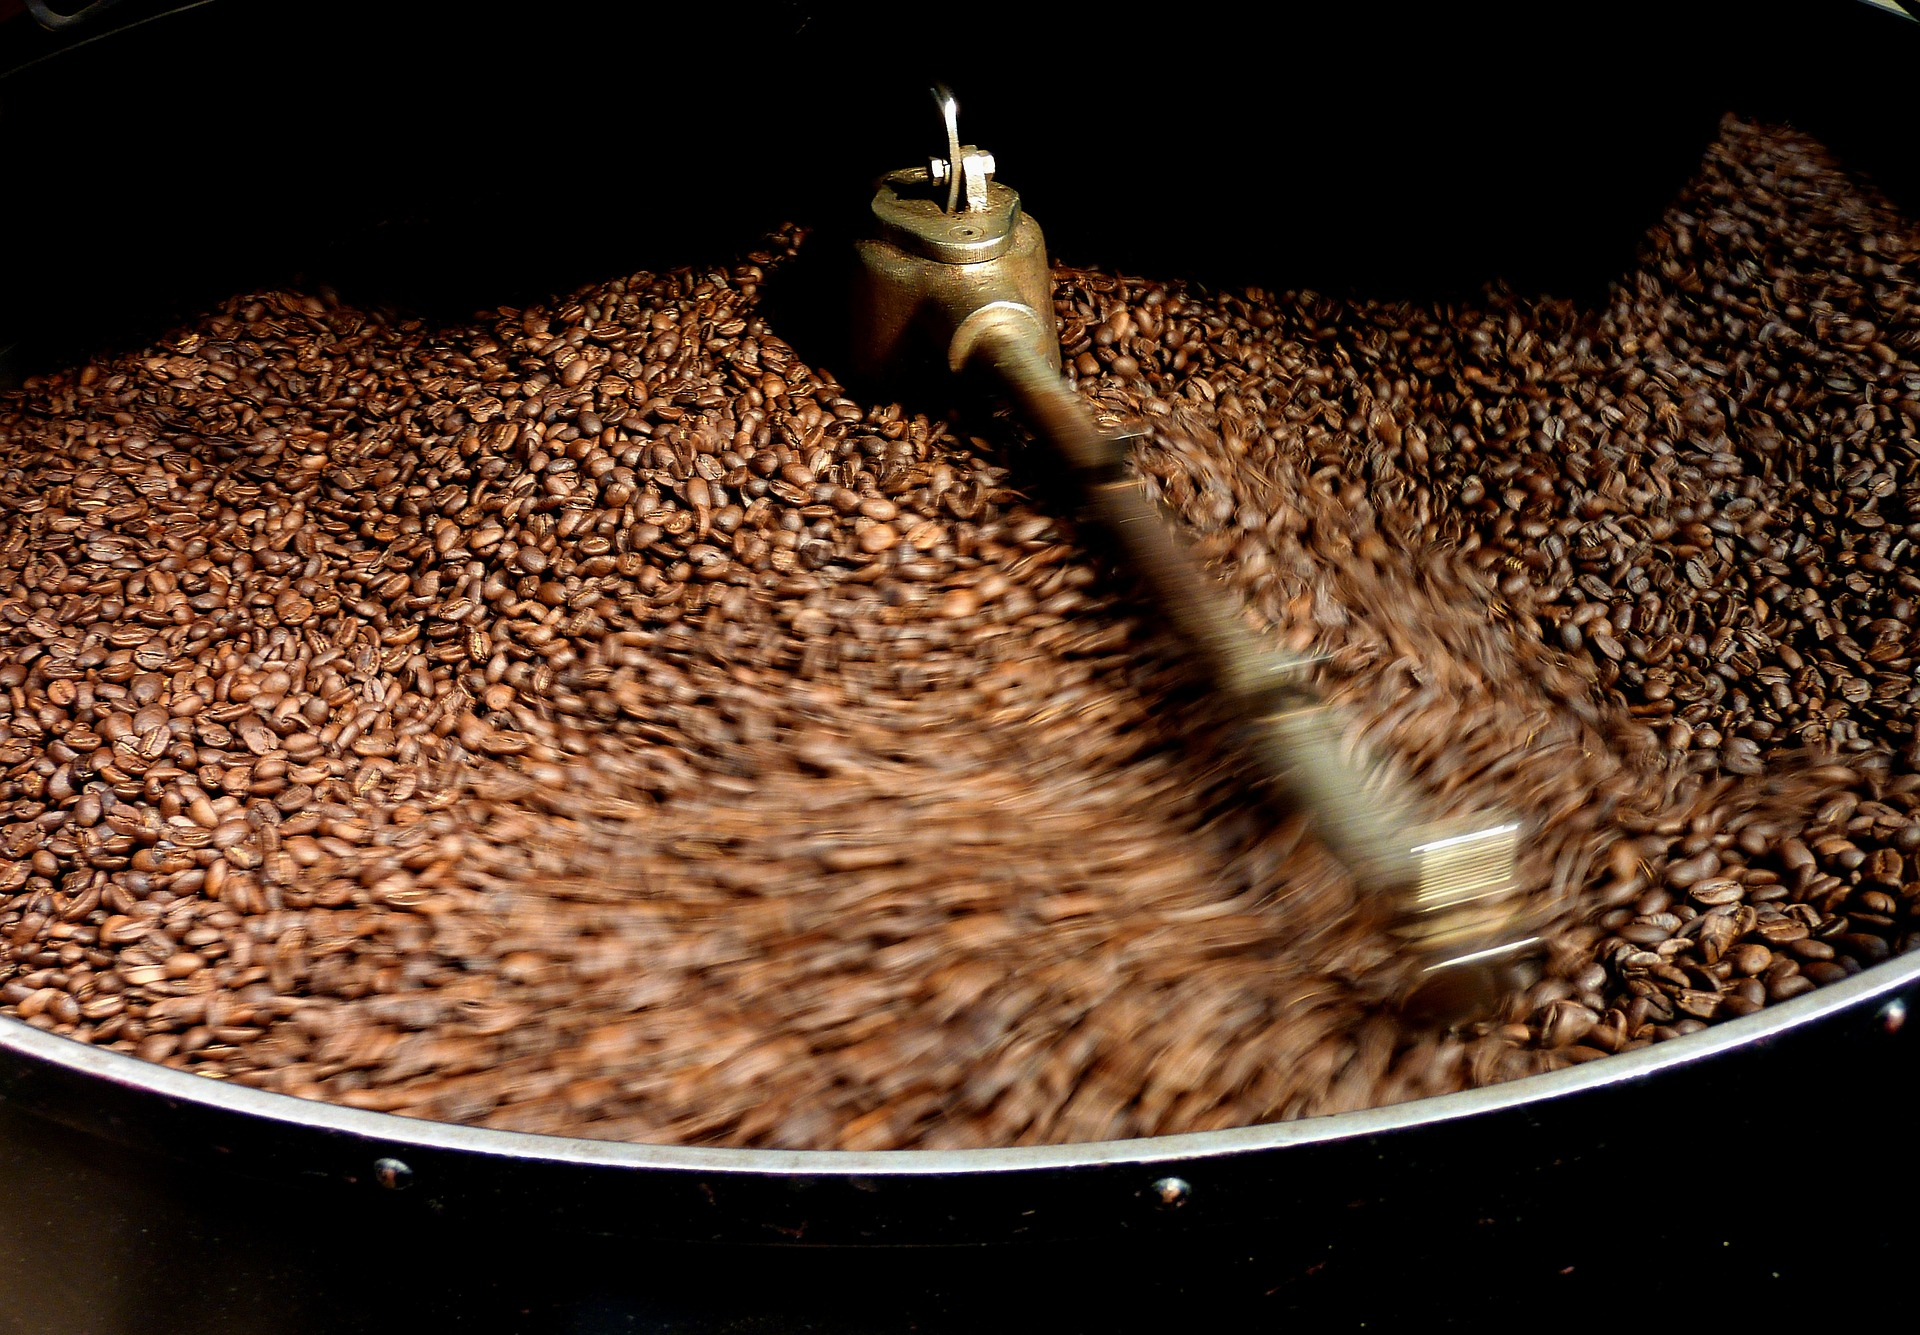 Image of coffee beans in Costa Rica